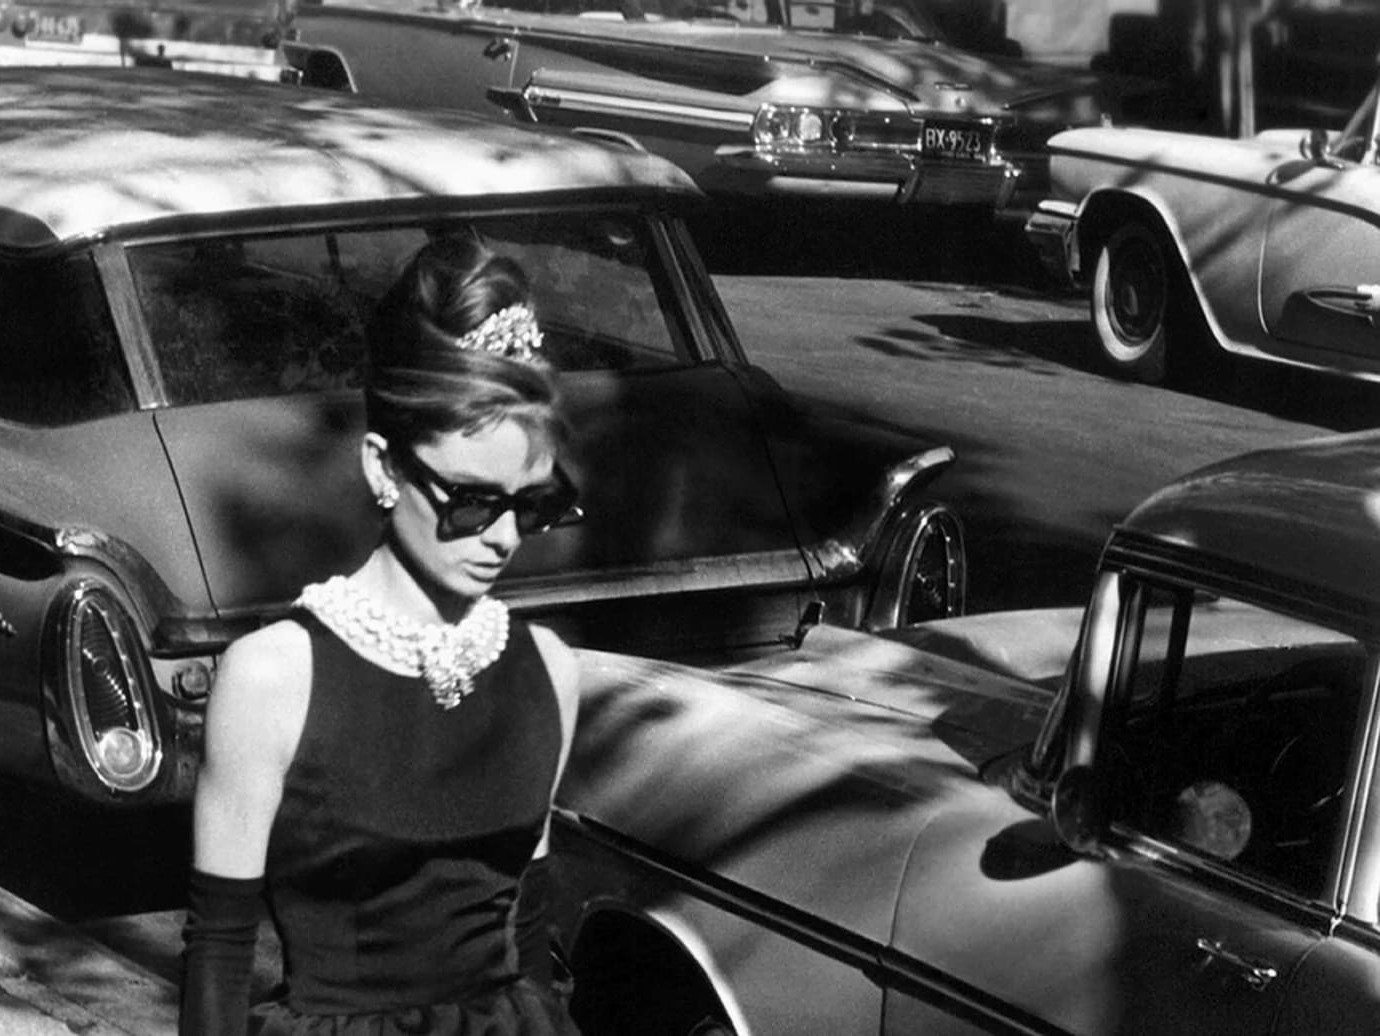 """Troubled call girl Holly Golightly in Blake Edwards' """"Breakfast at Tiffany's,"""" based on the novella by Truman Capote."""